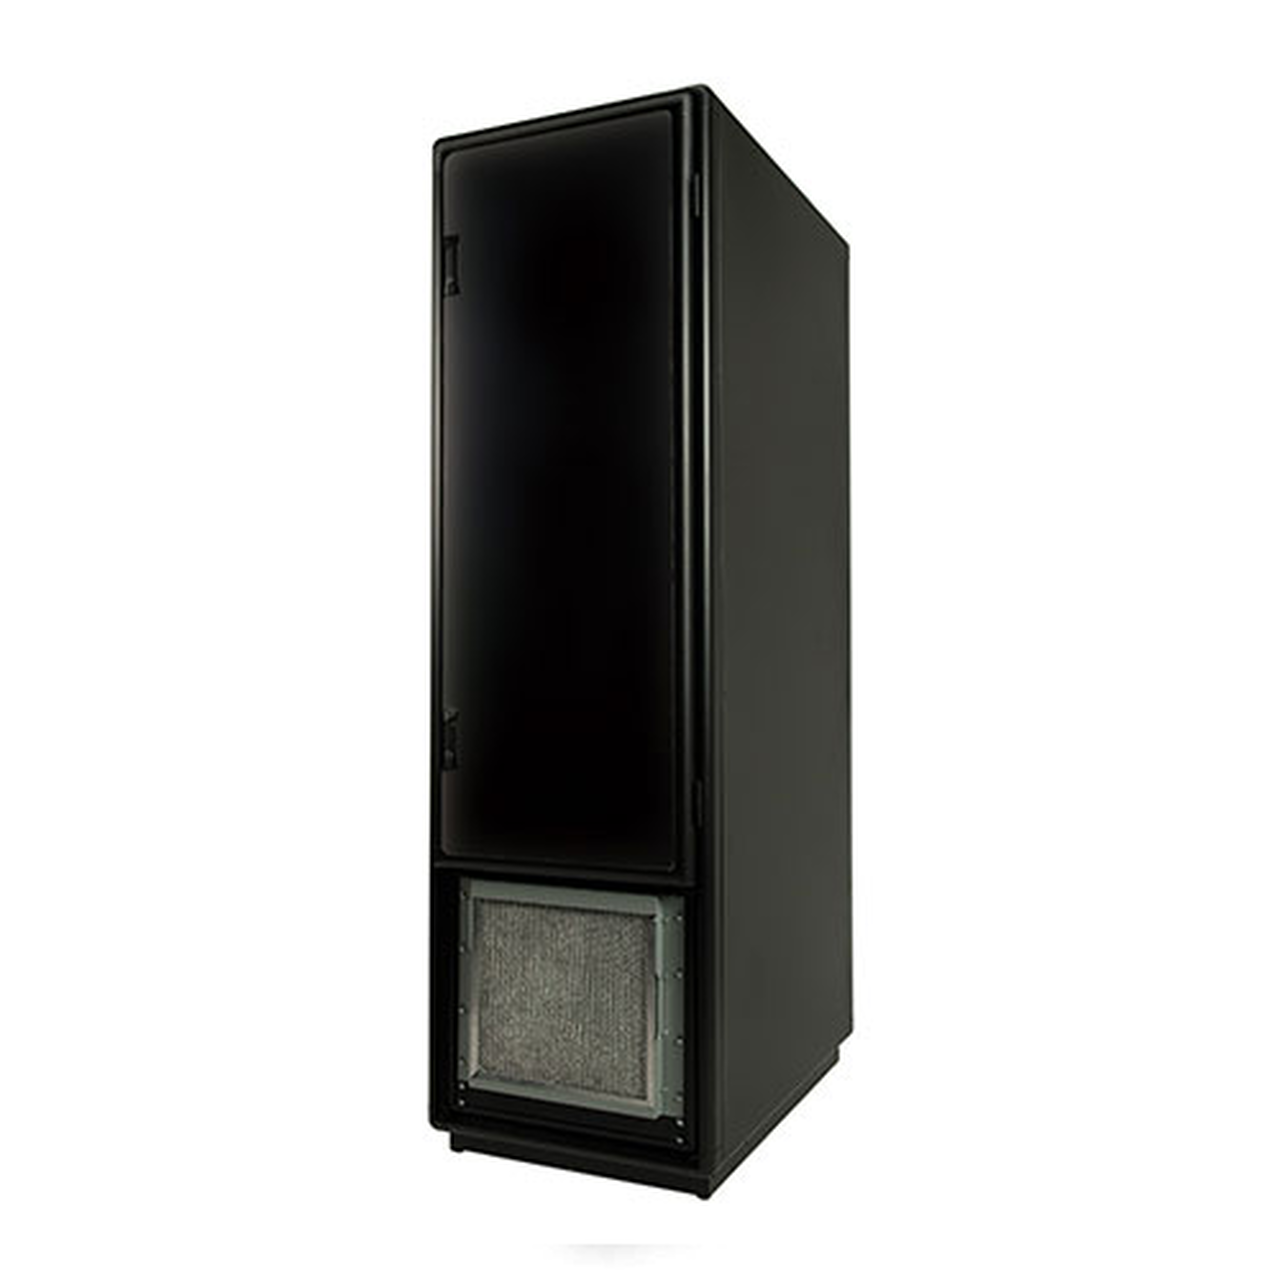 Air Conditioned Server Rack Cabinet With Cooling Rackmount Solutions